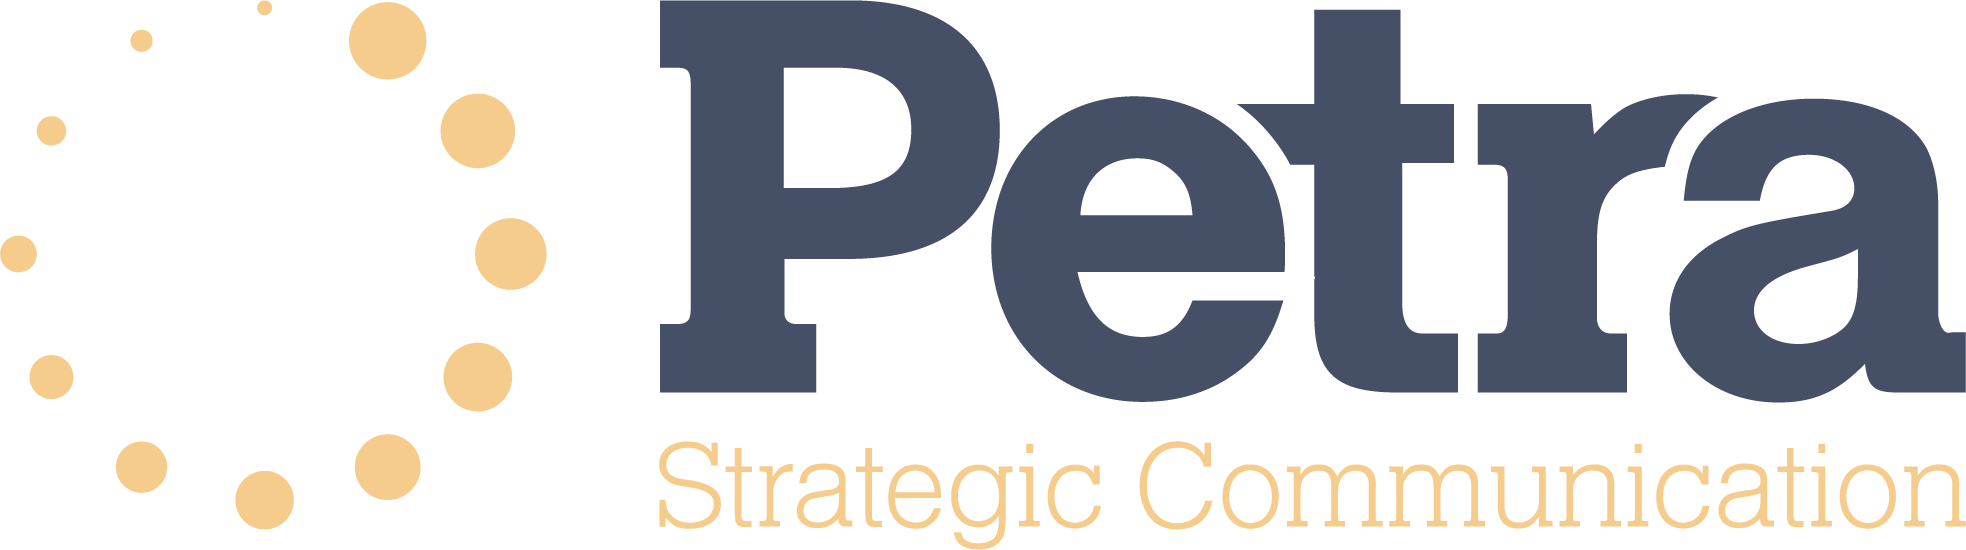 Petra Strategic Communication